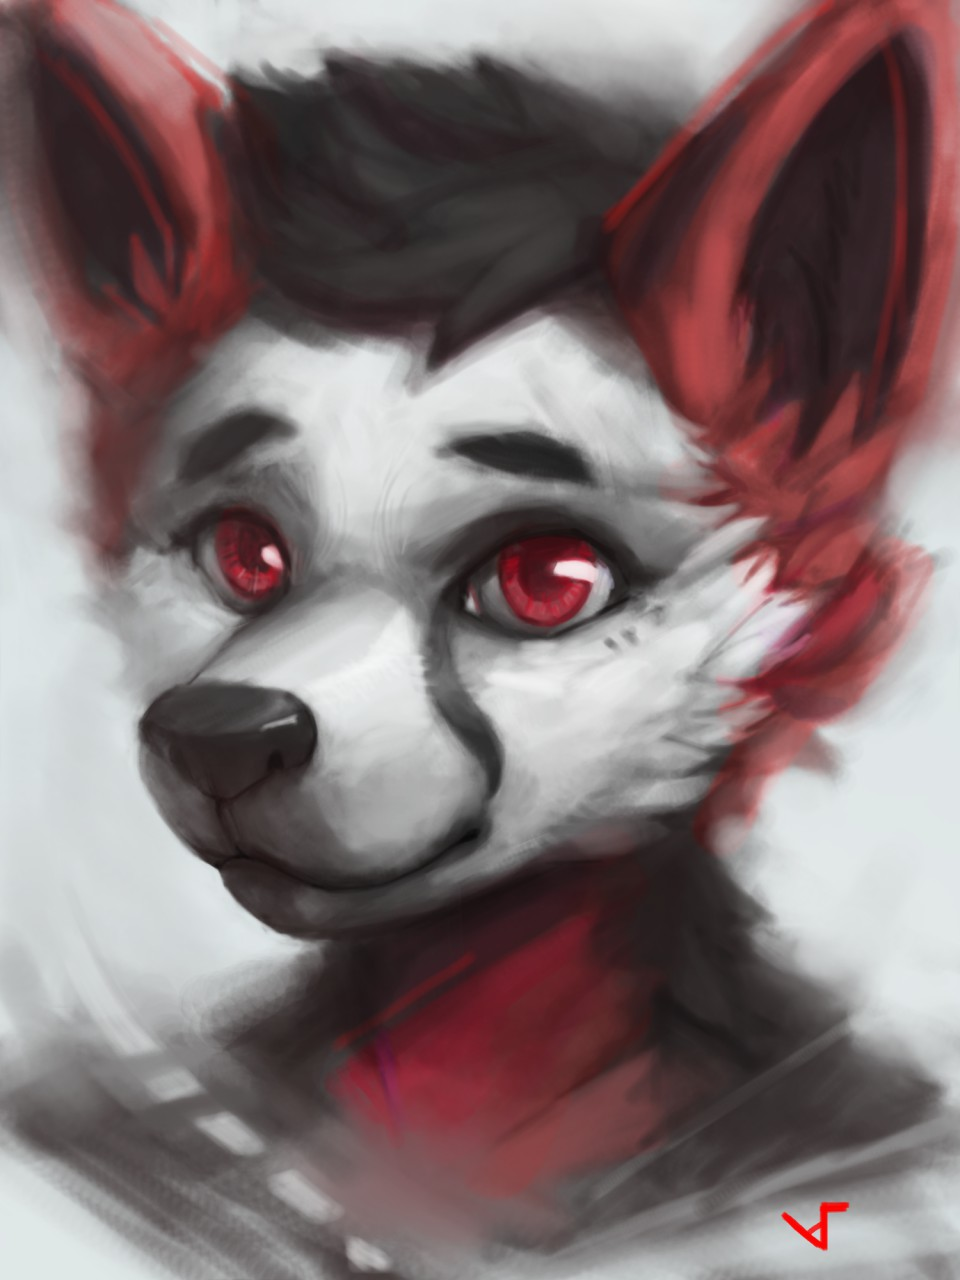 Most recent image: [Gift] Painted Bust